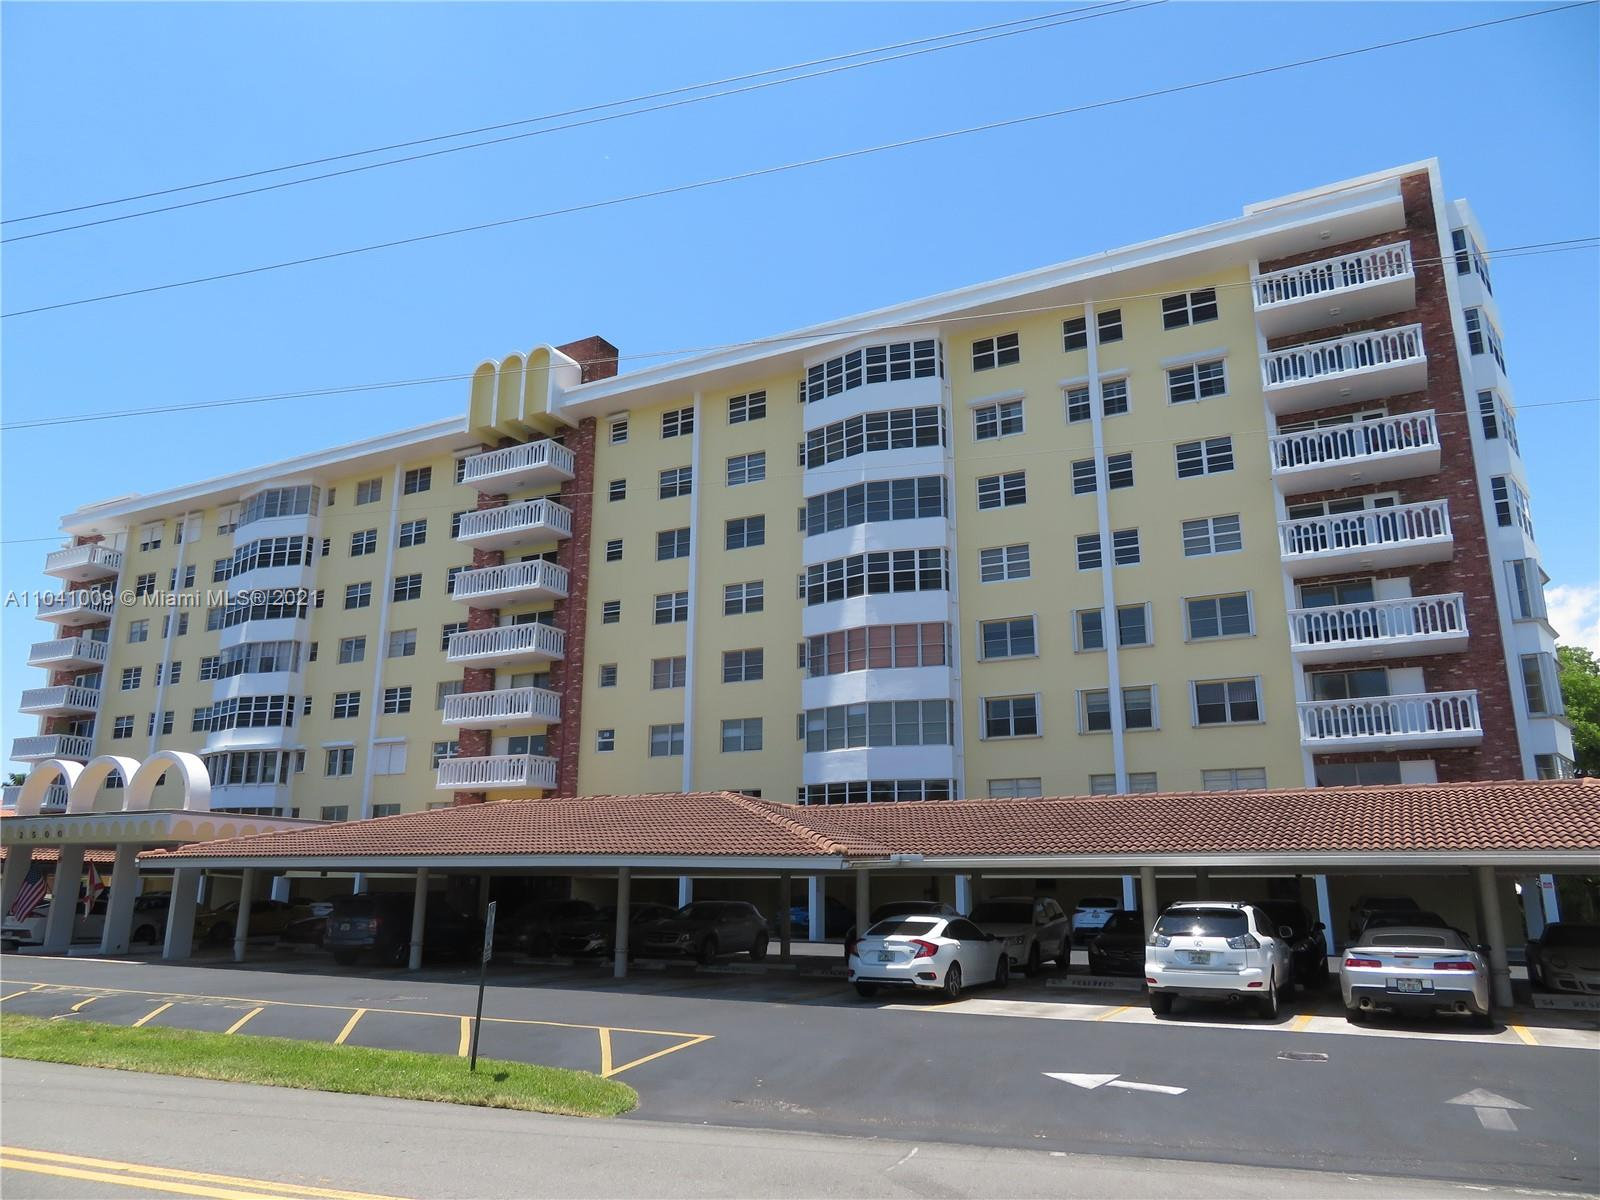 This 2 Bedroom 2 Bath Condominium has been meticulously maintained for many years as has the Building! Building provides an attendant at the front door and closed circuit cameras provide 24 hour surveillance, for your peace of mind. Covered parking is another great feature! Ideally located close to fine restaurants, Houses of Worship, I-95, fun activities in Lauderdale By The Sea and so much more! Beautiful views nightly of the stained glass windows across the street! New paint. Great Area Value! How in the world do people live anywhere else? Come check it out before it's gone!